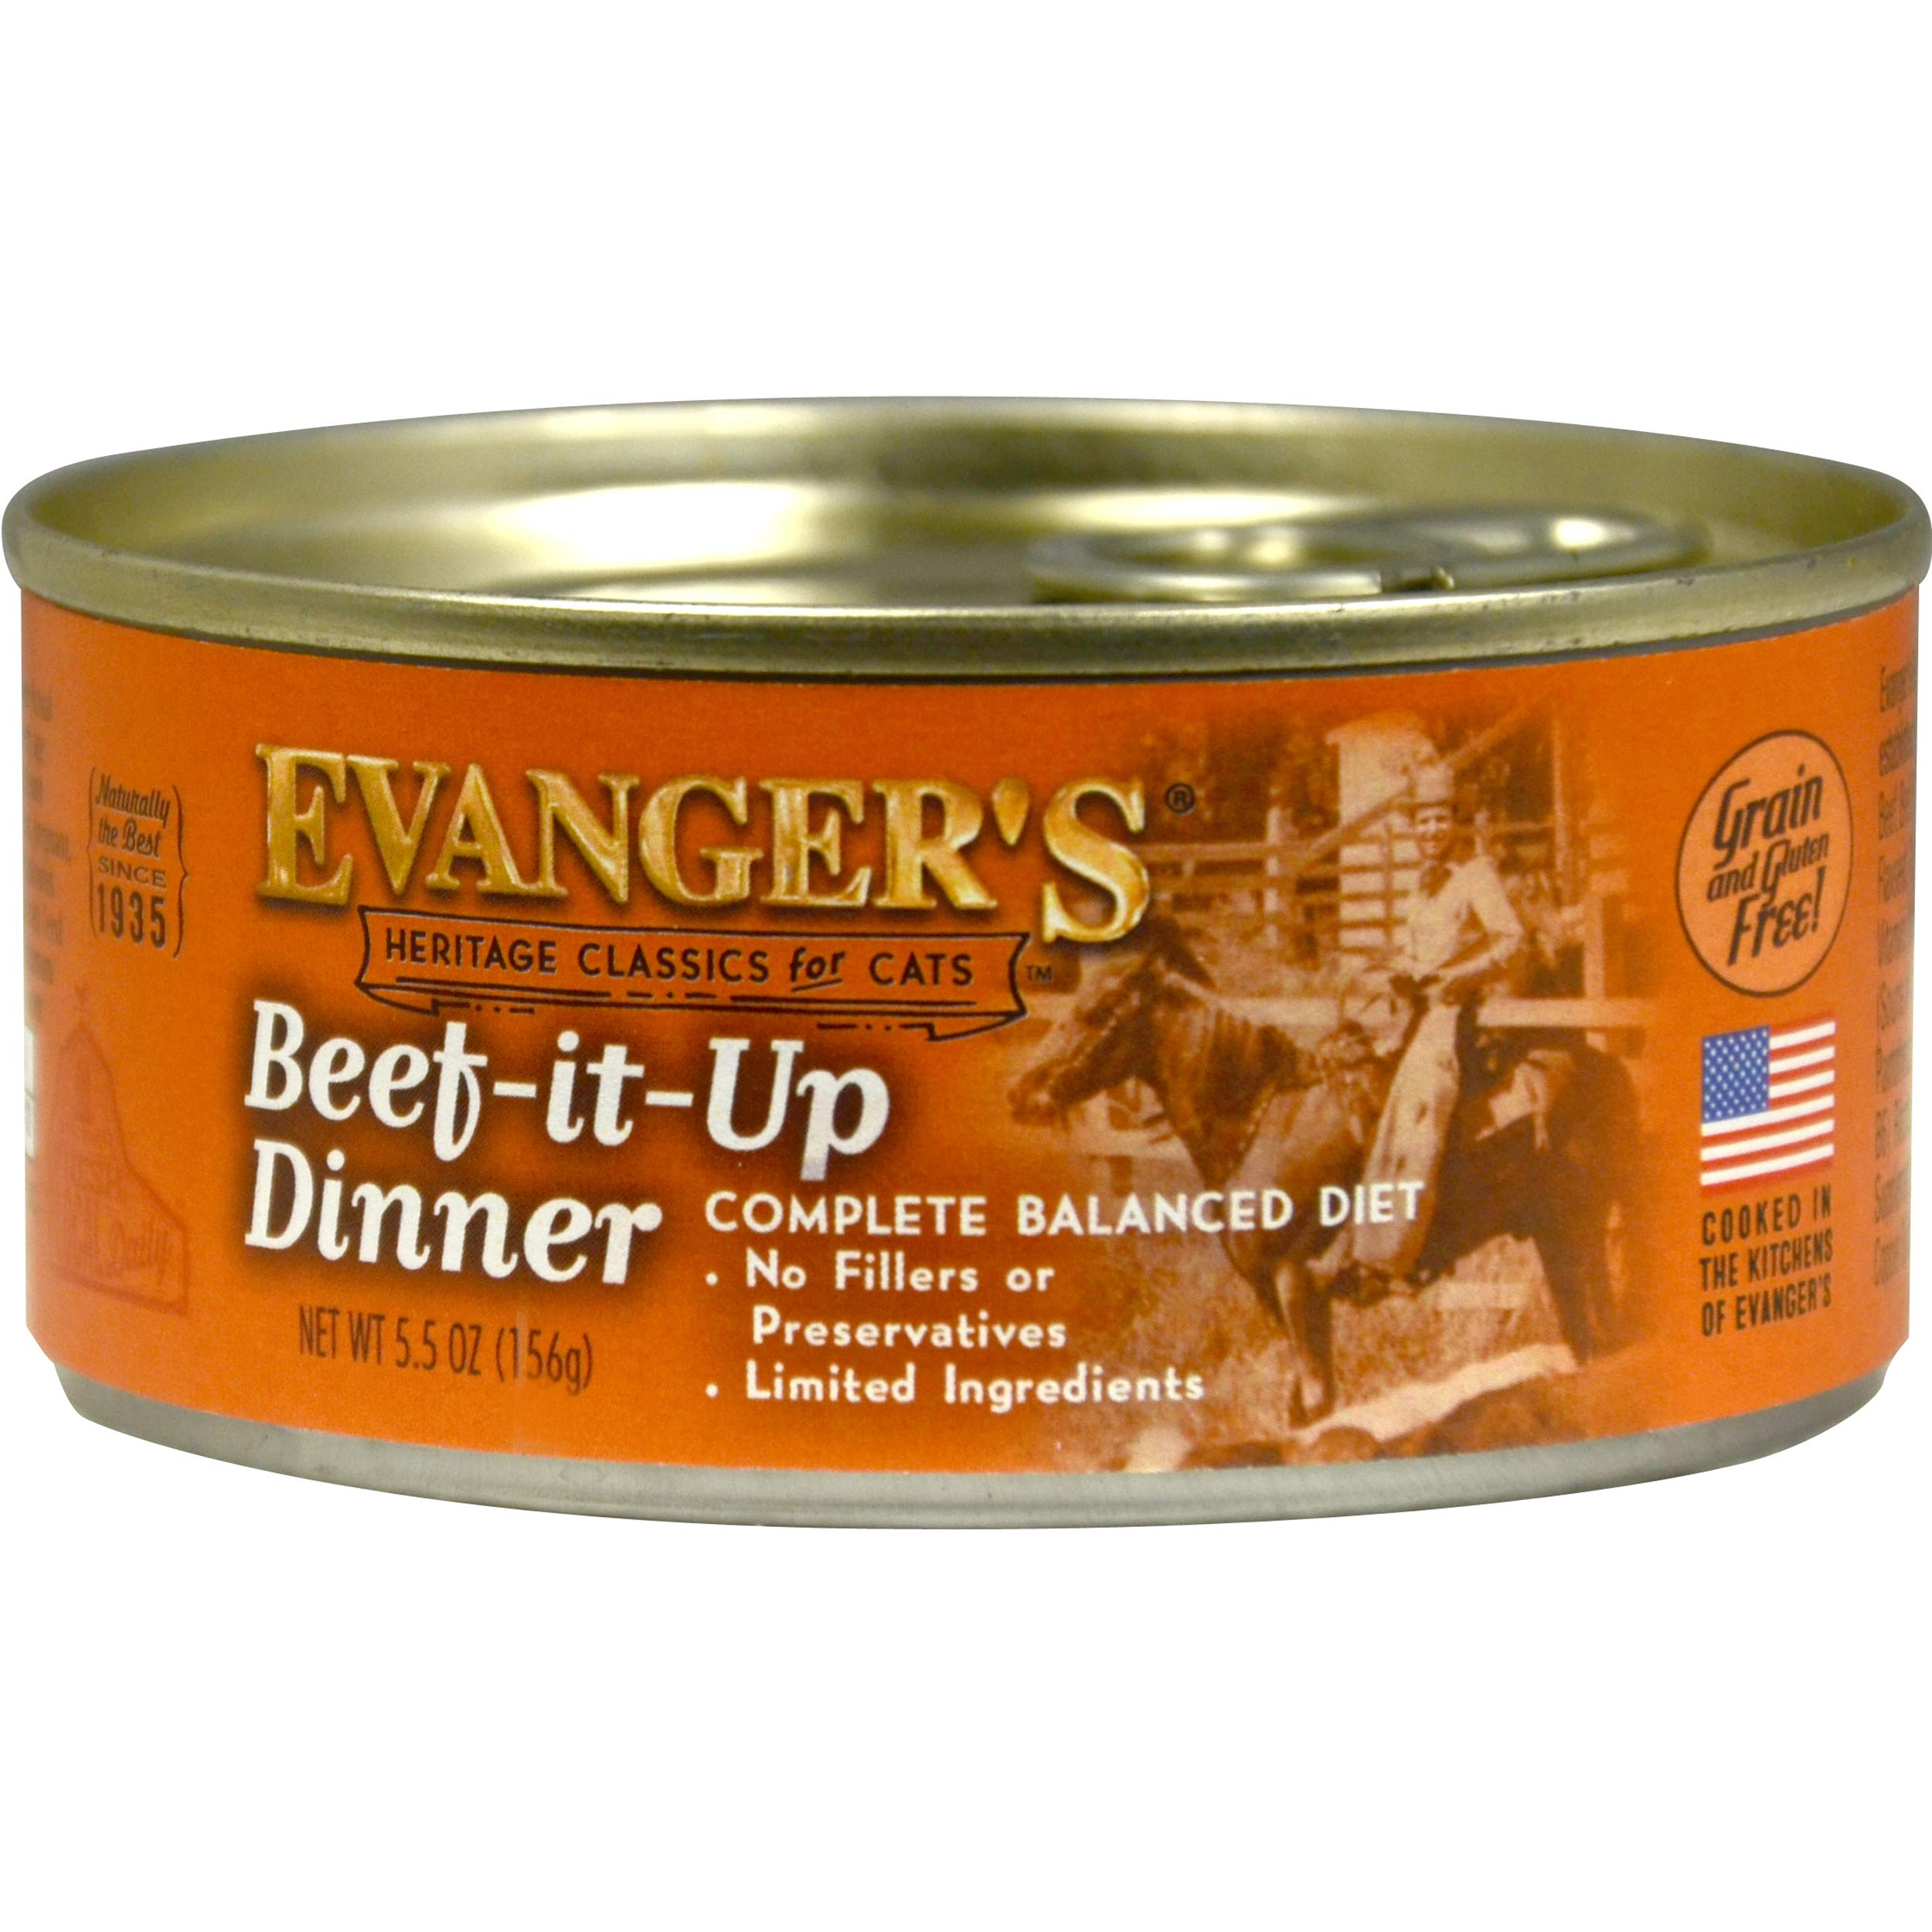 Evanger's Heritage Classic Beef It Up Dinner for Cats, 24 x 5.5 oz cans by Evanger's Dog & Cat Food Company, Inc.